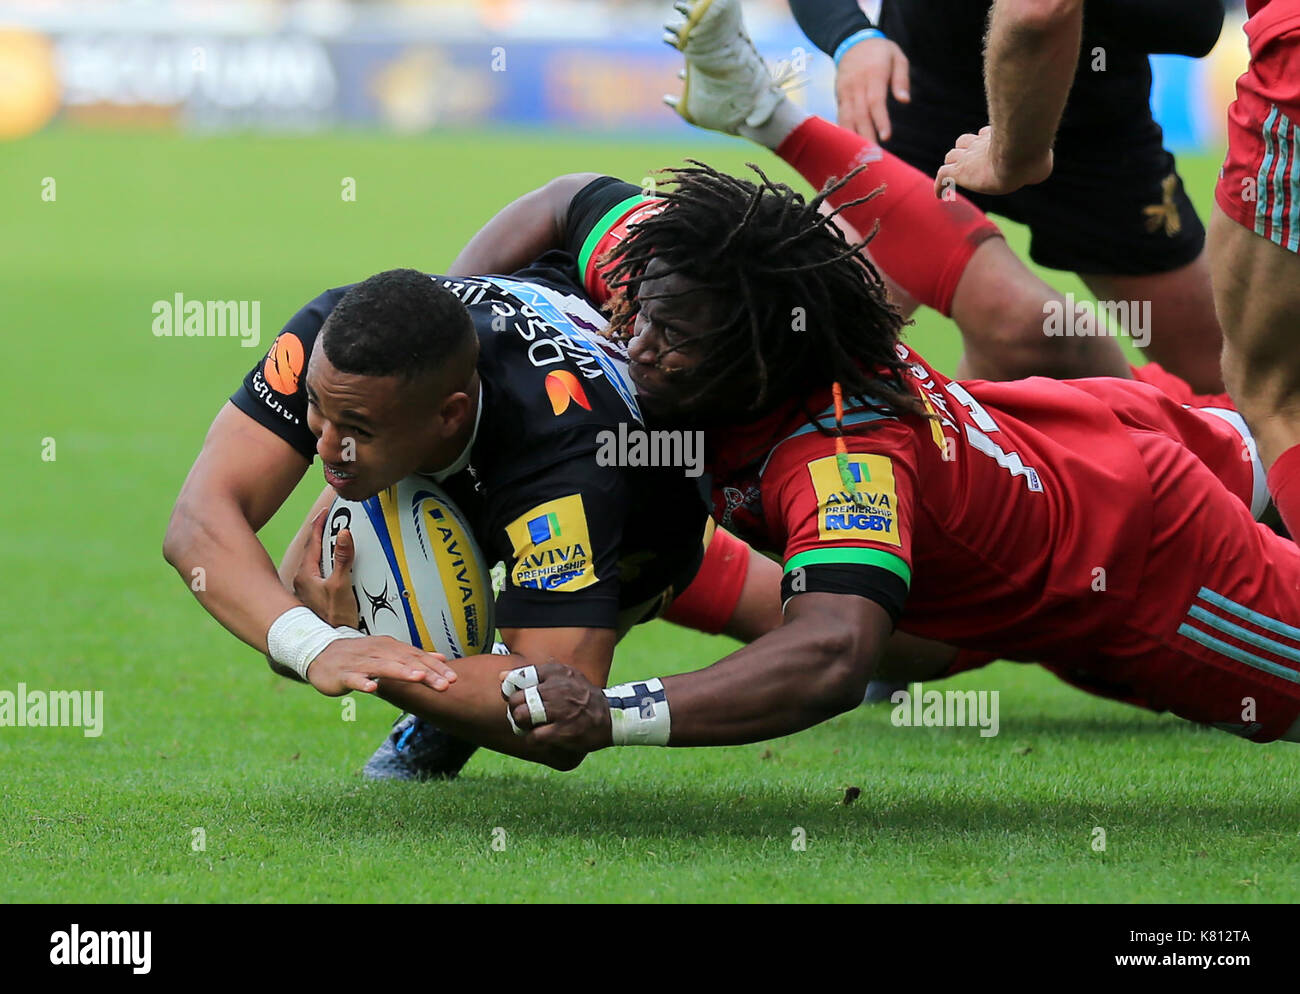 Wasps Marcus Watson tackled by Harlequins Marland Yarde during the Aviva Premiership Rugby match between Wasps RFC v Harlequins F.C on Sunday 17th September 2017 at the Ricoh Arena, Coventry. Credit Leila Coker - Stock Image